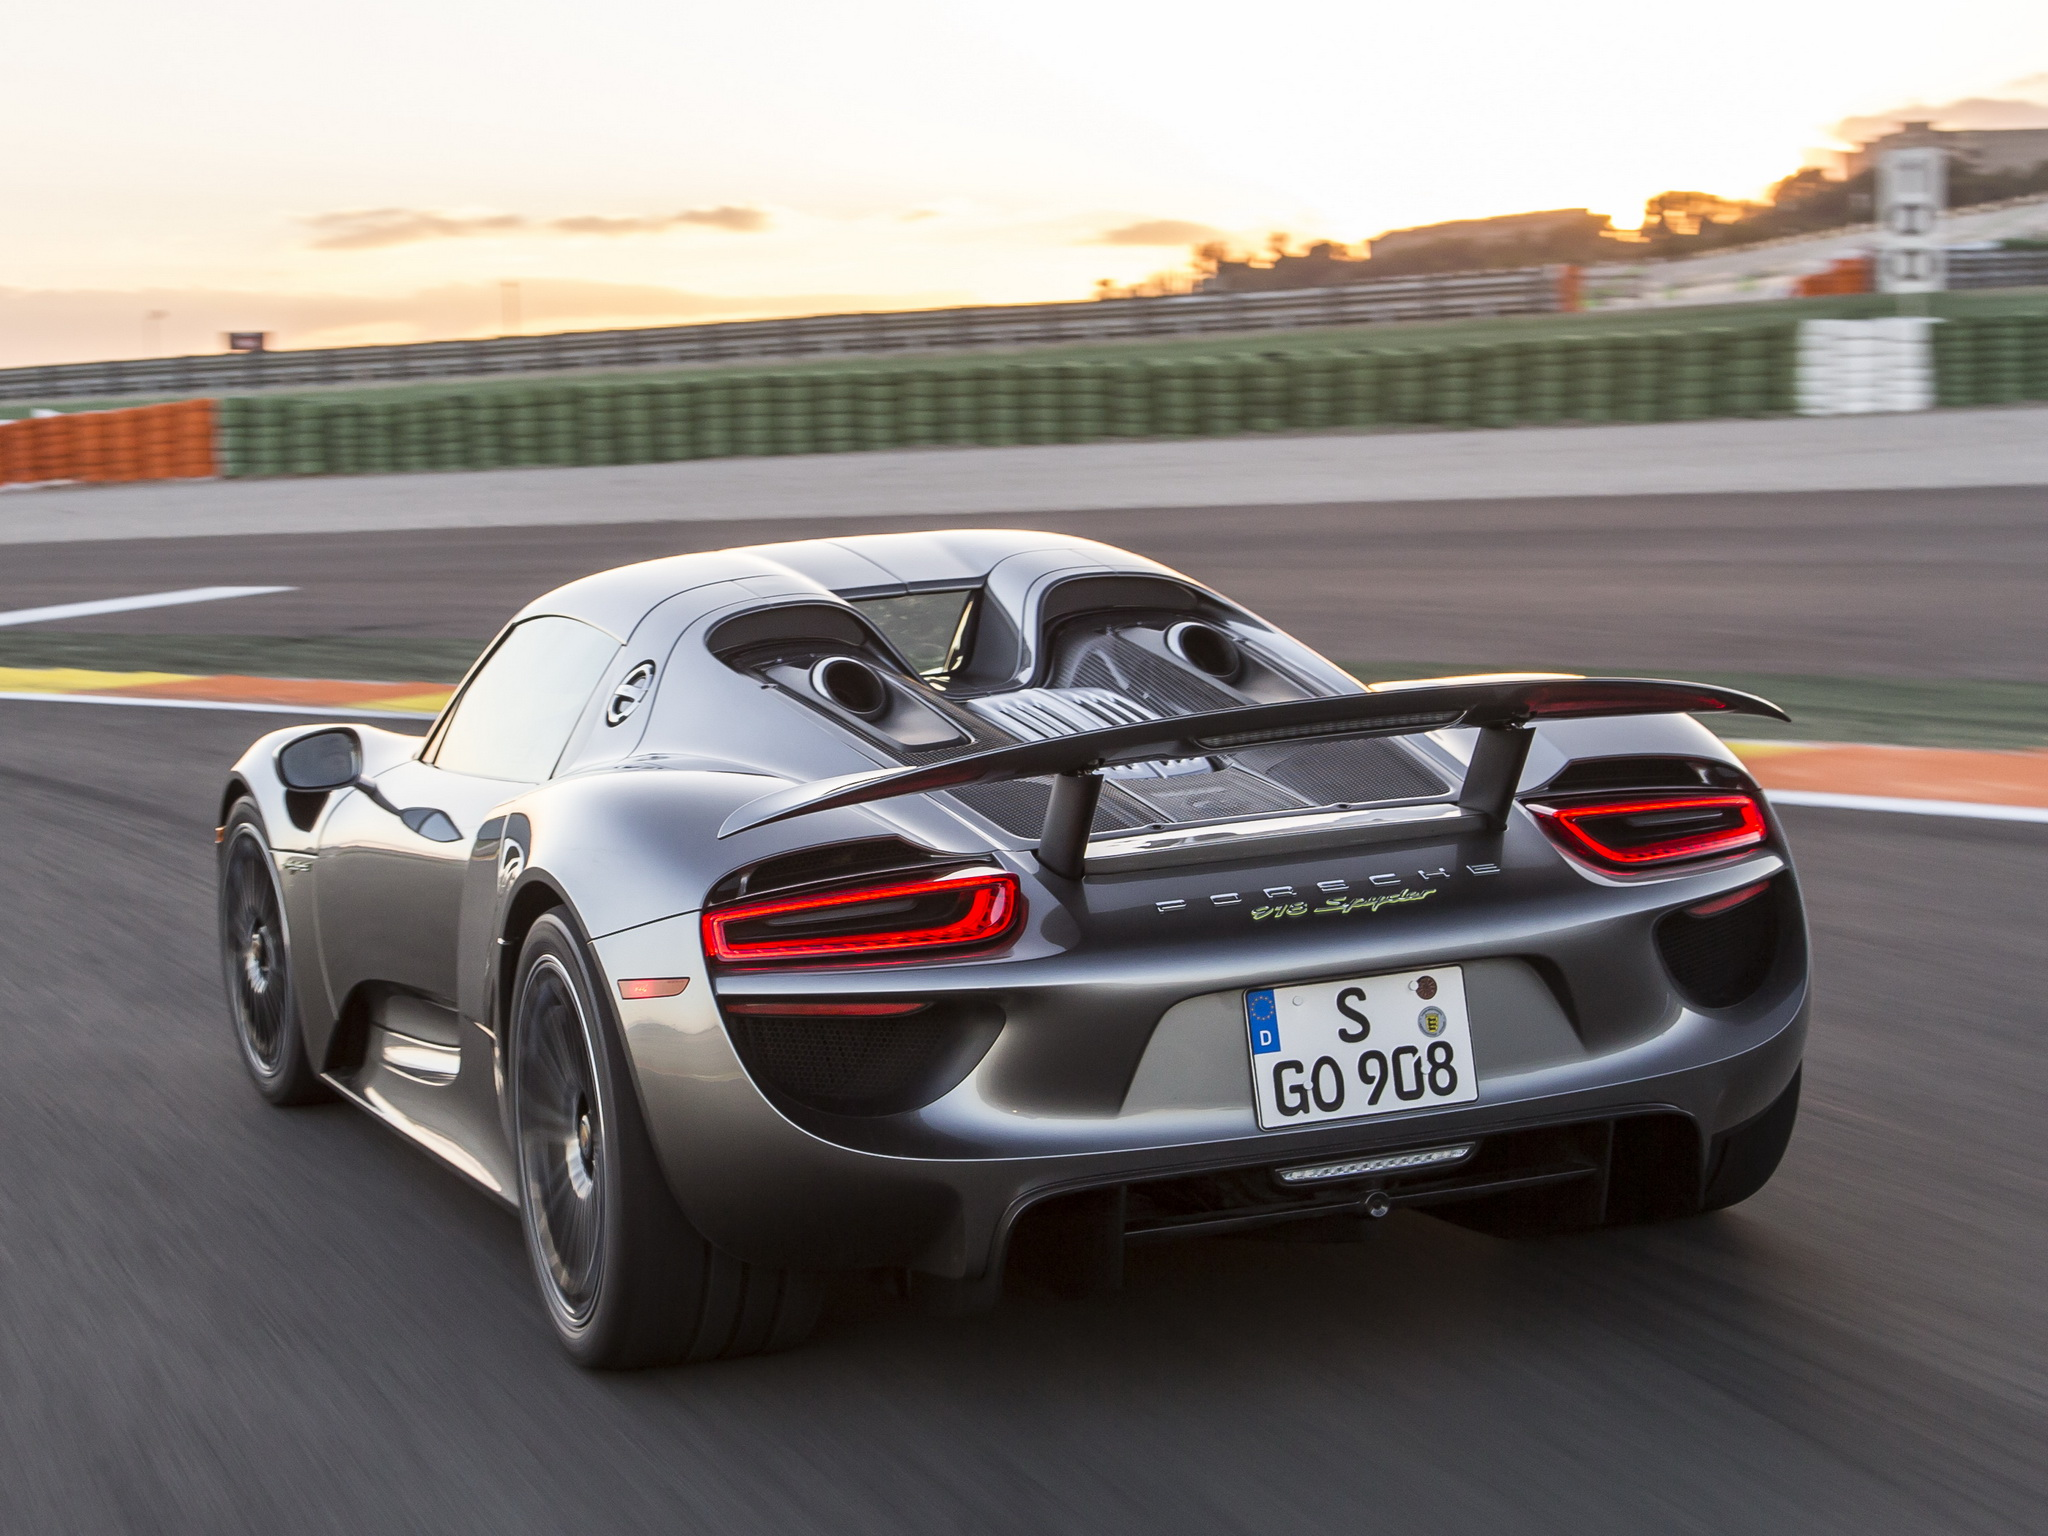 2014 porsche 918 spyder supercar f wallpaper 2048x1536 194041 wallpaperup. Black Bedroom Furniture Sets. Home Design Ideas